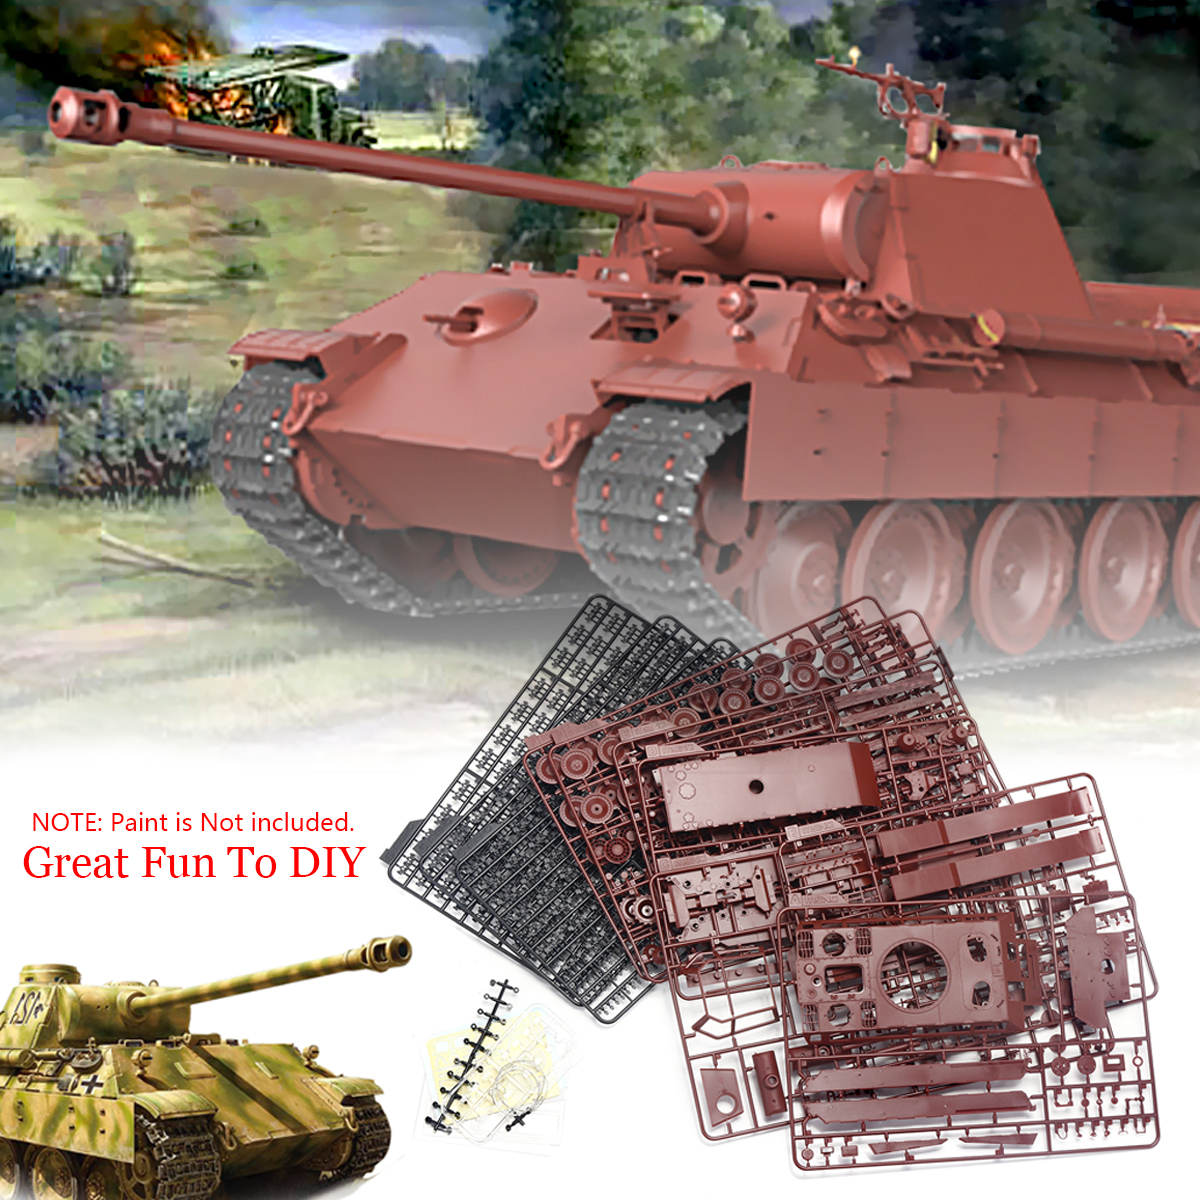 DIY Toy Kit For Meng TS-035 Sd.Kfz.171 Panther Ausf.A Late WWII Military Tank Model Building Kits Creation 1:35 Great Fun